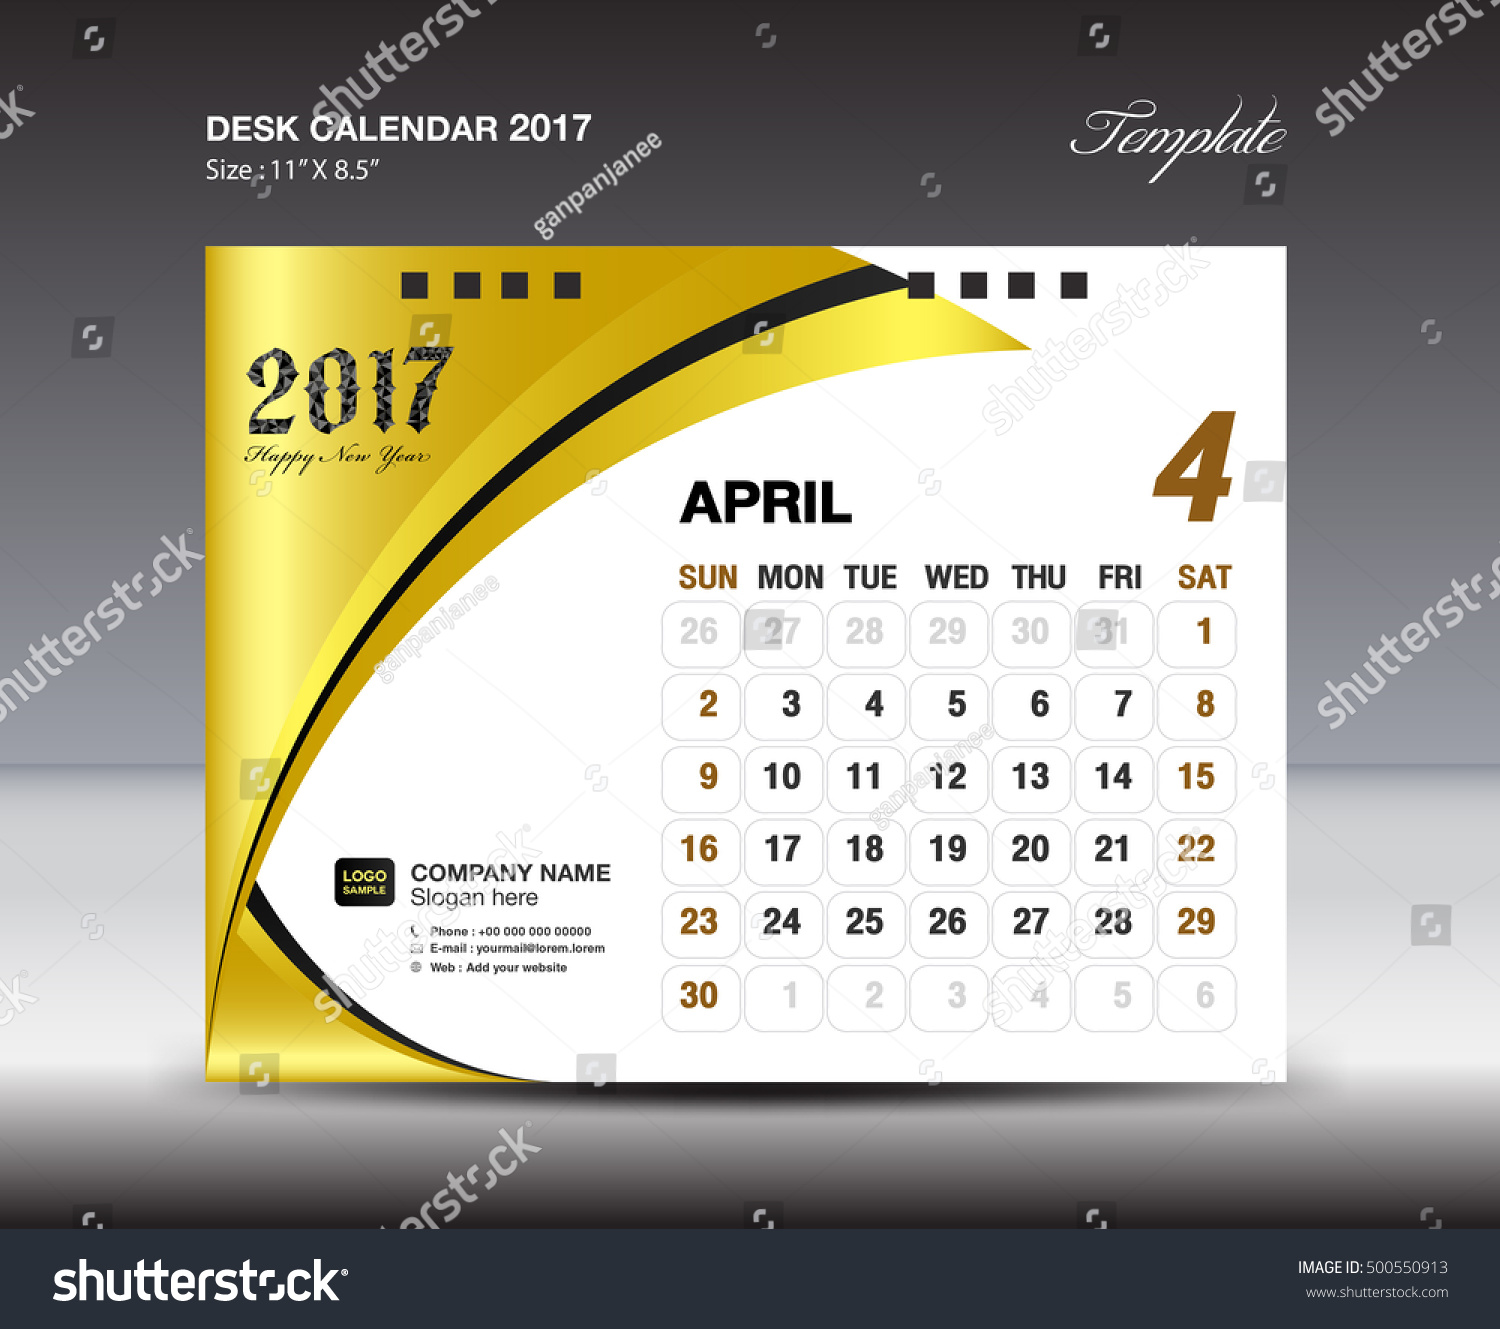 Gallery of Blue Cover Desk Calendar 2017 Design Template Calendar ...